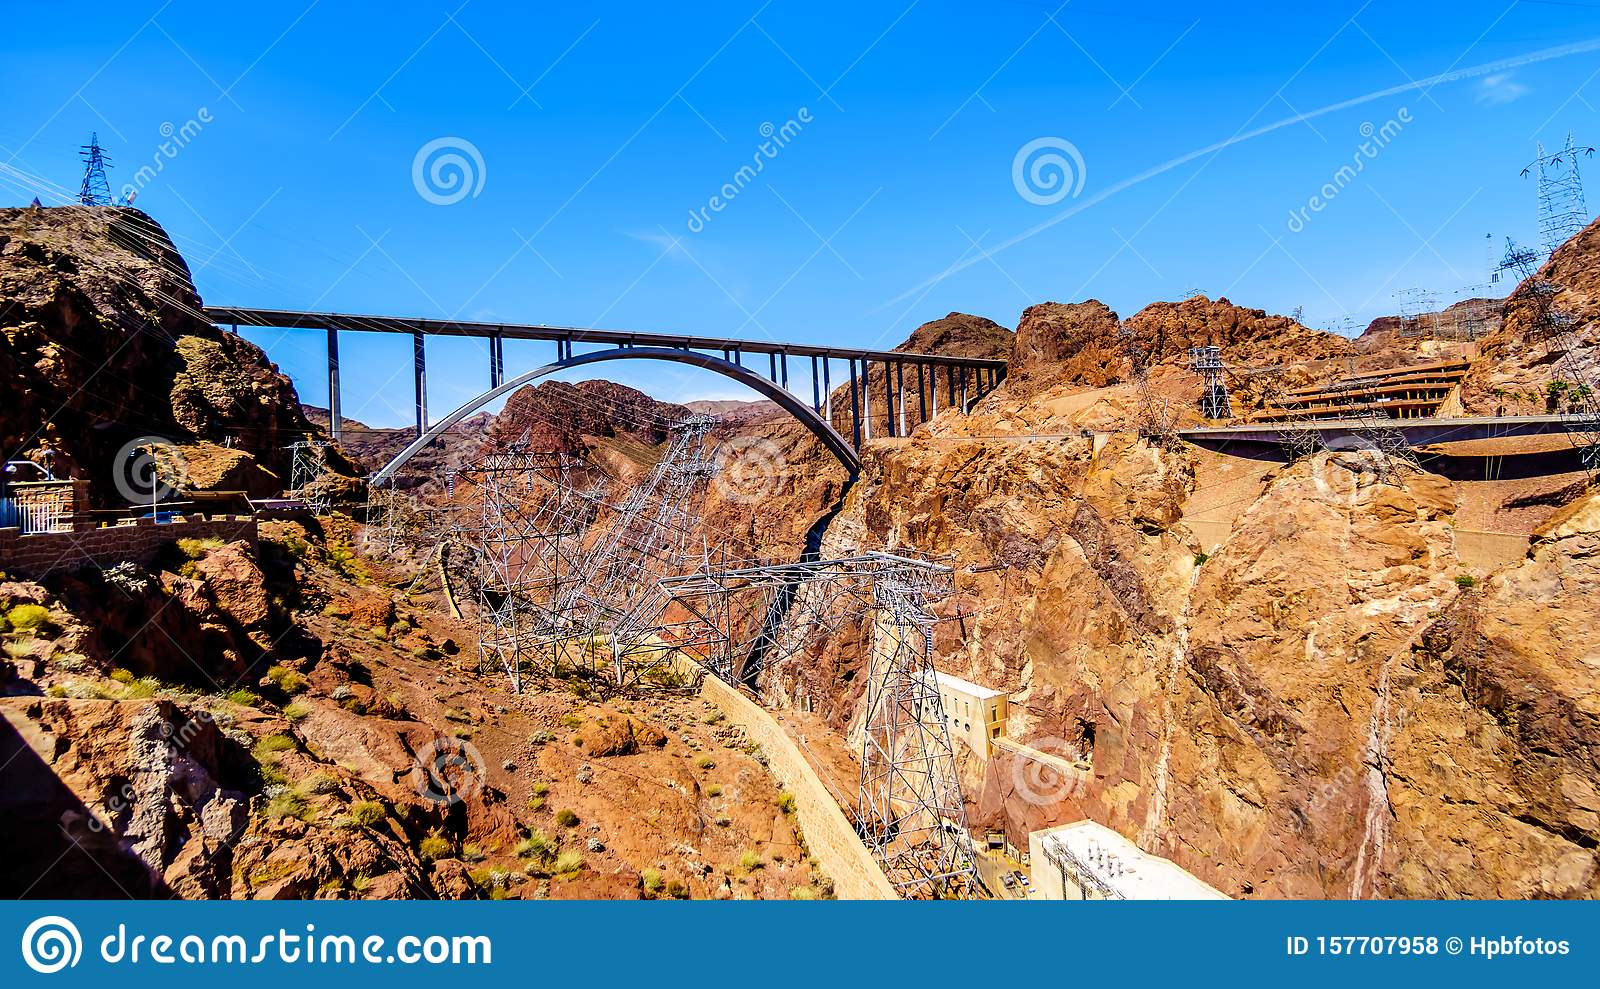 The Mike O`Callaghan–Pat Tillman Memorial Bridge that crosses the Colorado river just downstream of the Hoover Dam